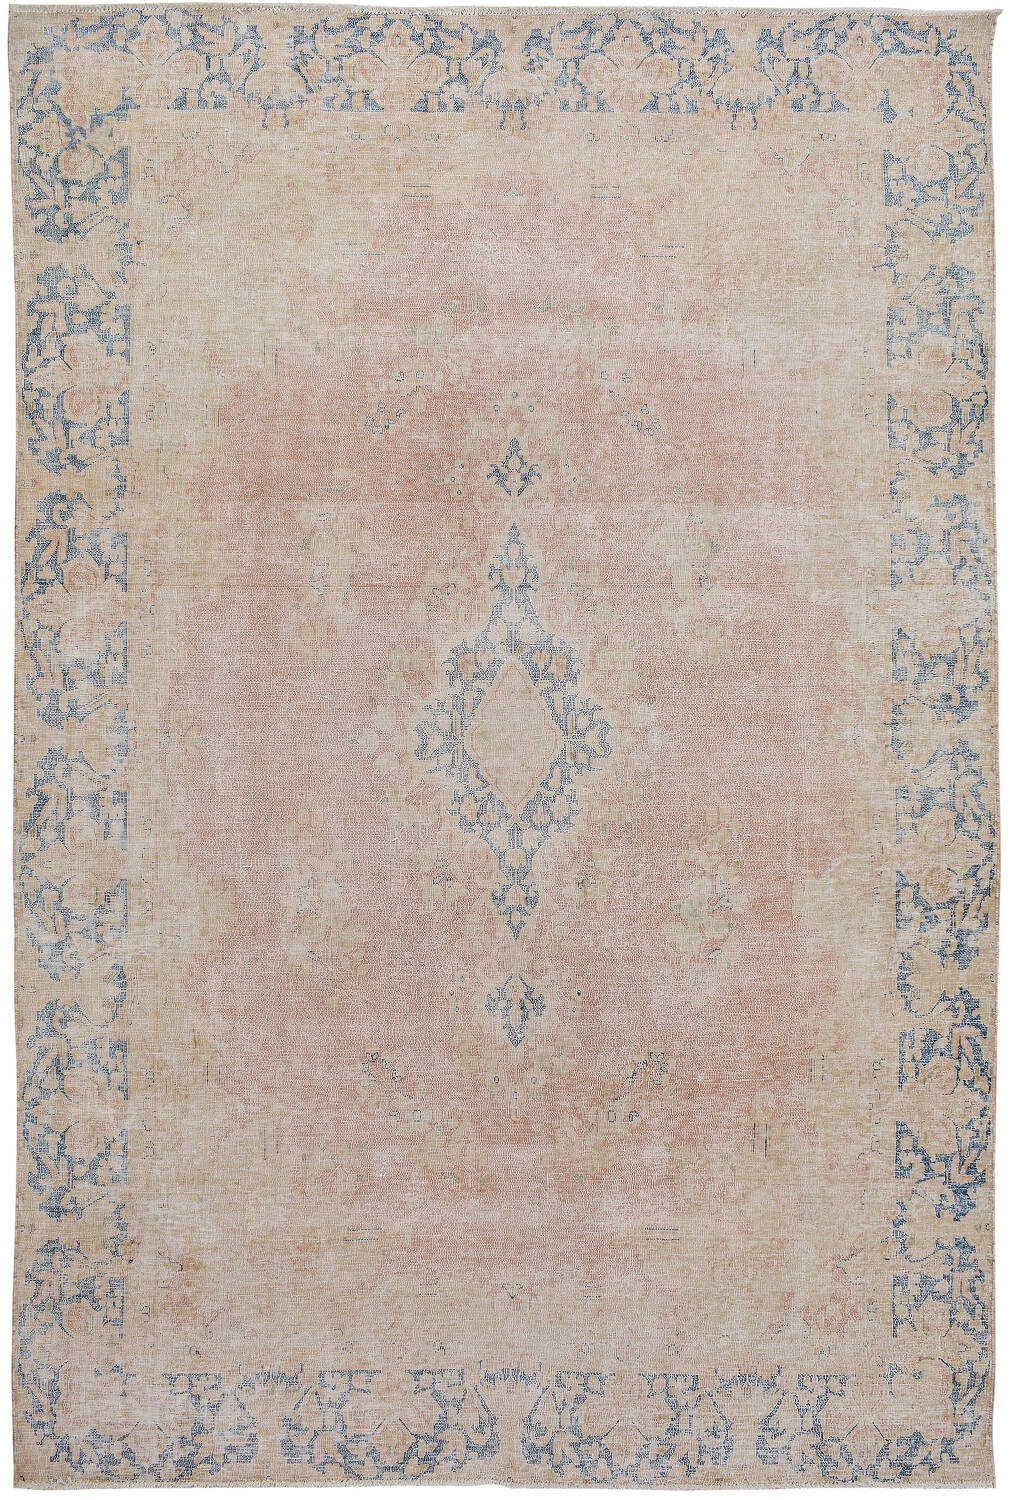 Antique Floral Muted Kerman Persian Area Rug 6x9 image 1